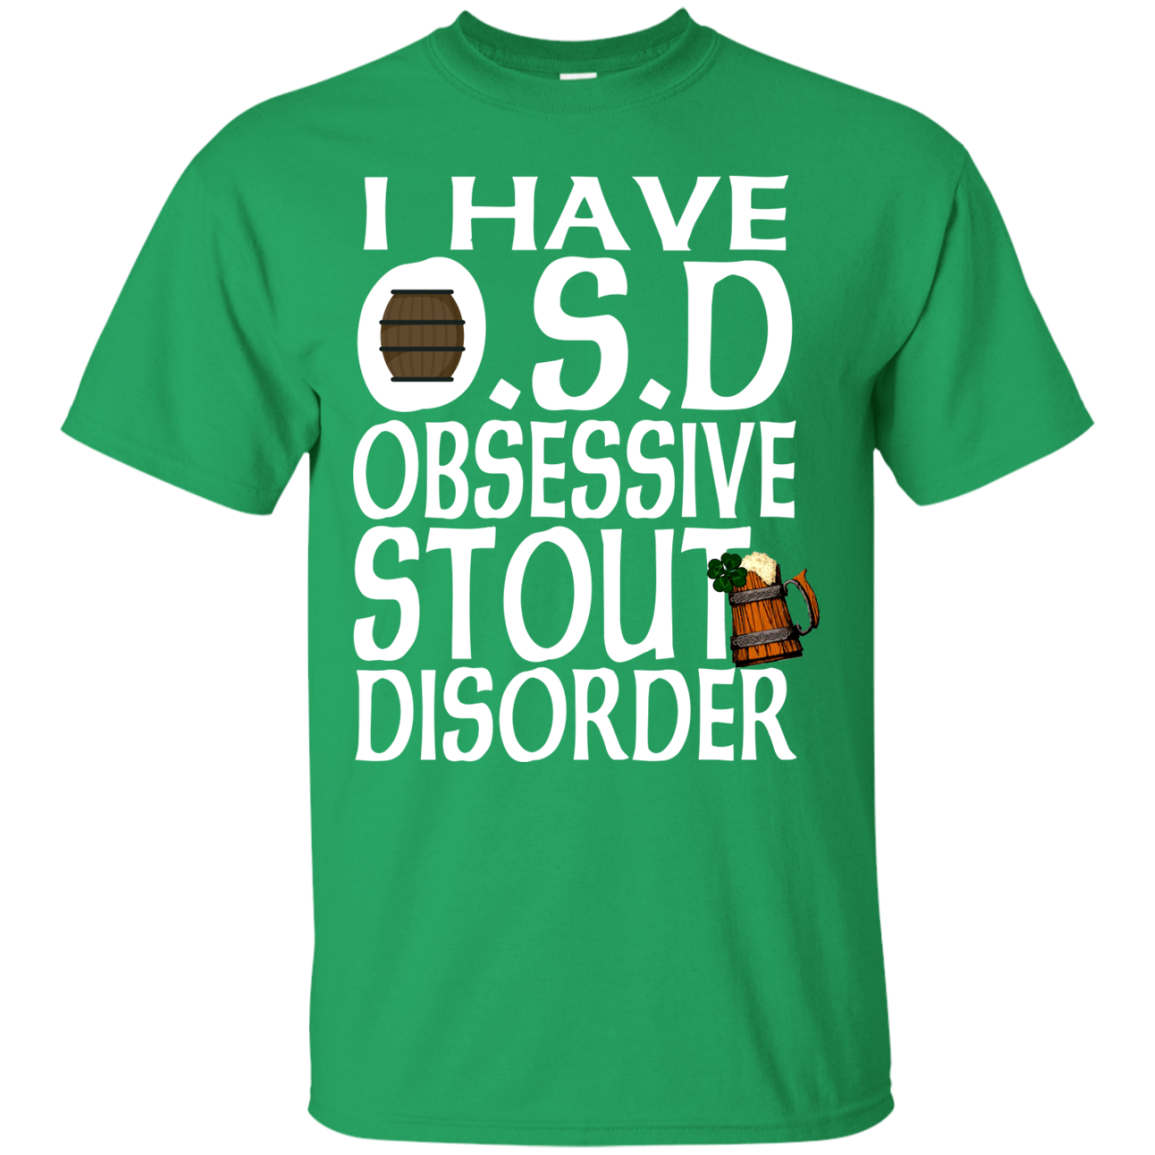 Irish Stout Irish Beer Obsessive Disorder St Patricks Day Clothing St Patrick's Day Shirts Hoodies For Women And Men